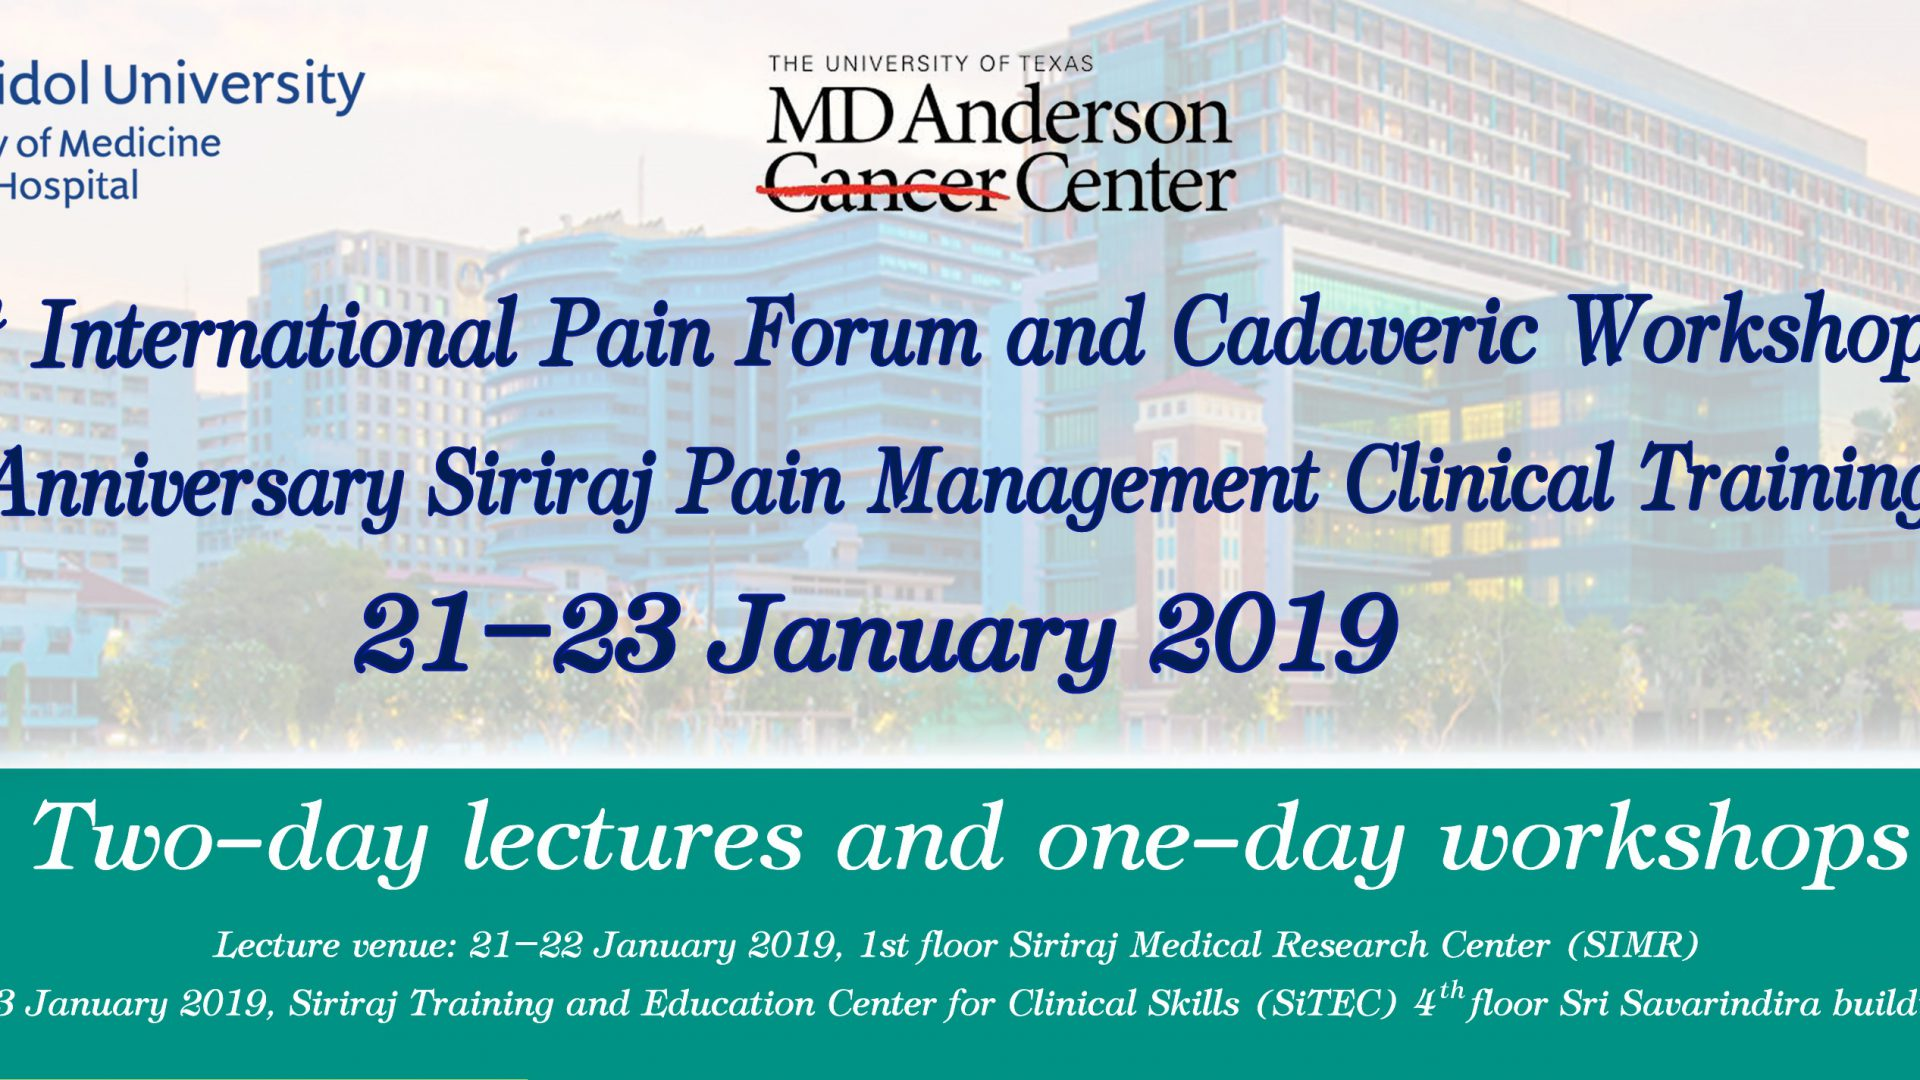 6th International Pain Forum and Cadaveric Workshop at Siriraj!